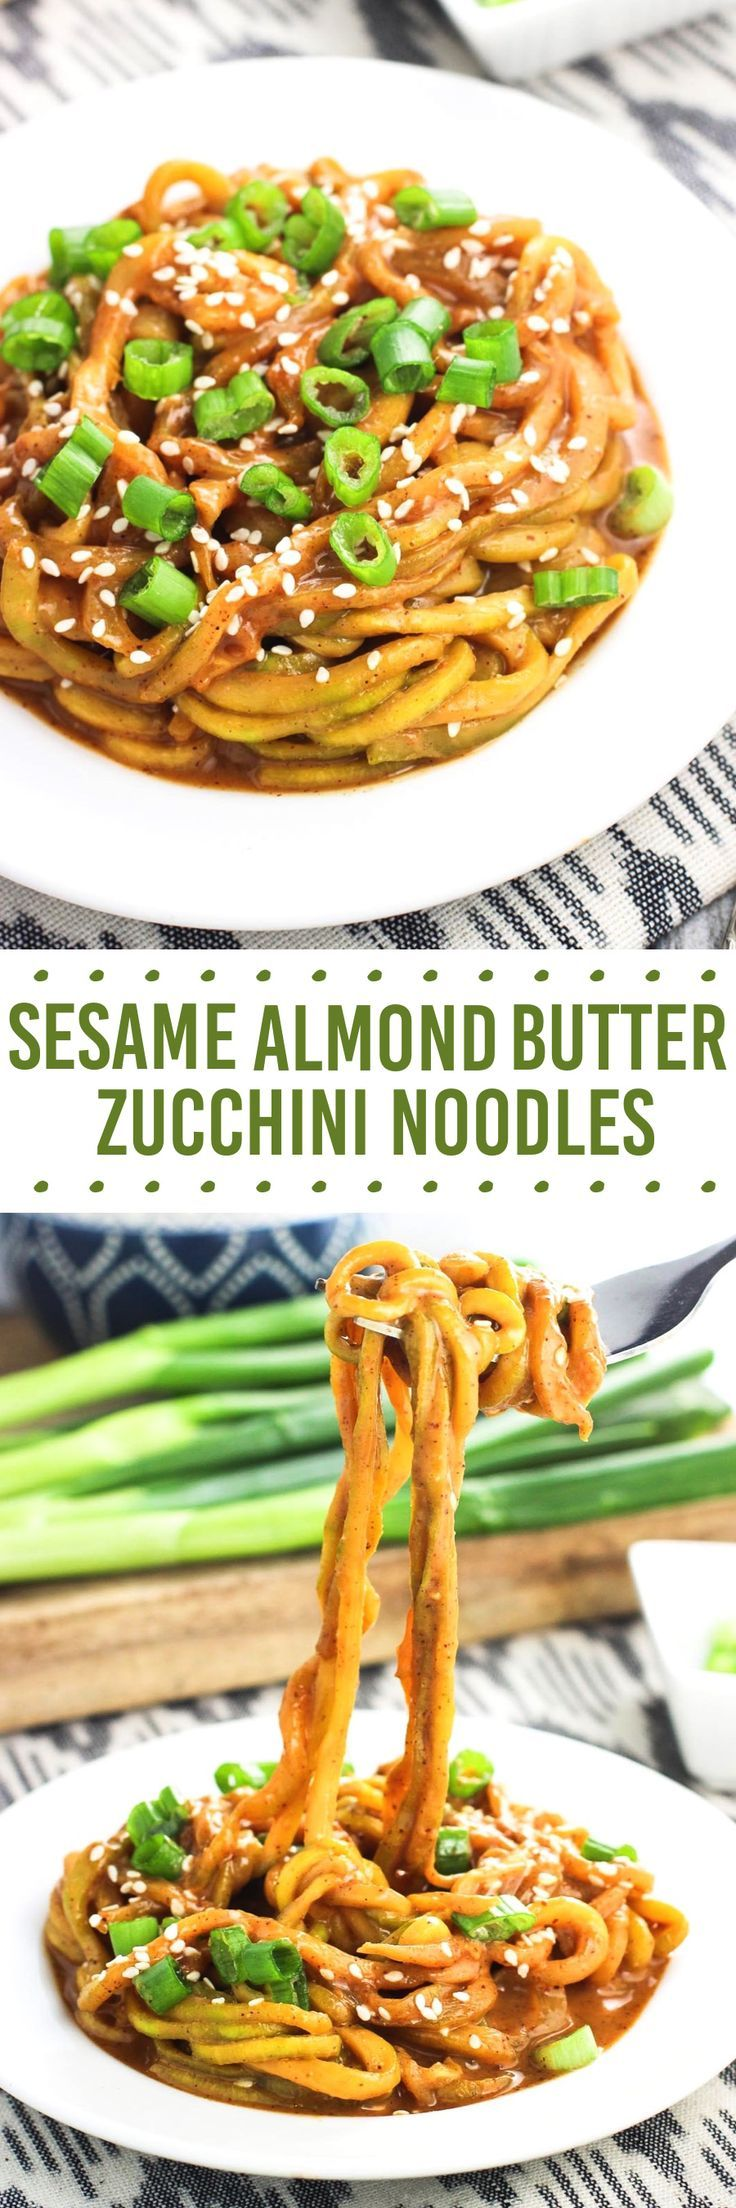 These sesame almond butter zucchini noodles make a healthy meal that takes about 20 minutes to make! The s